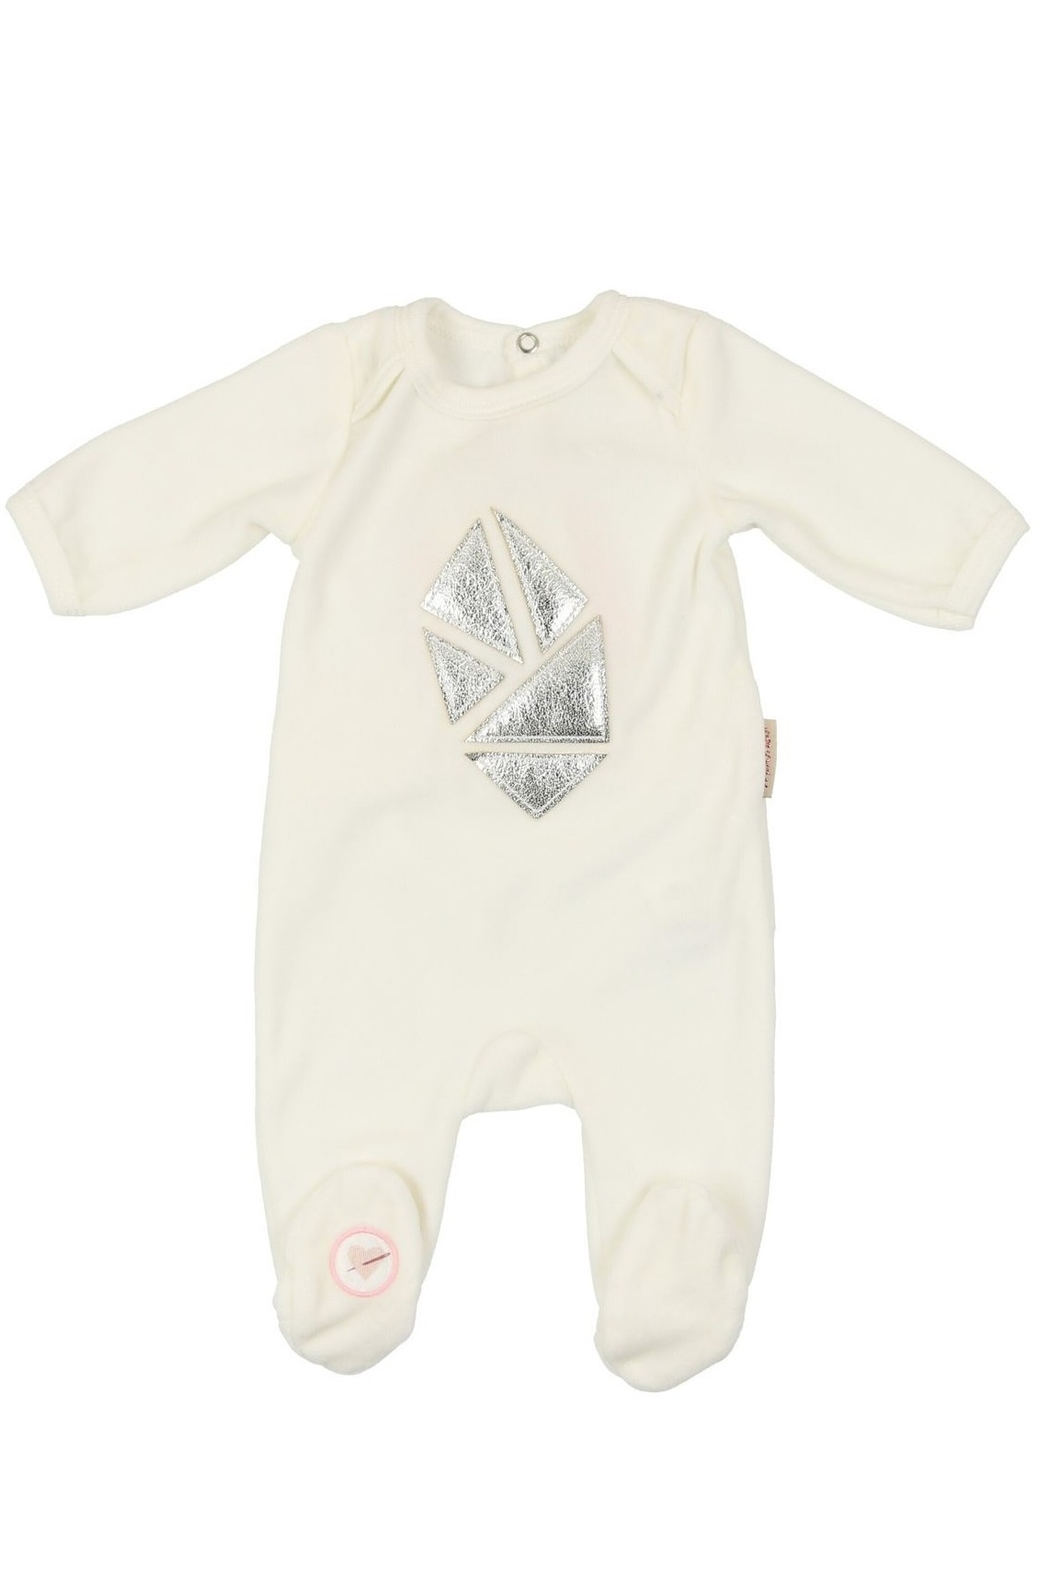 MON TRESOR  Mon Tresor Black & Rose Gold Leather Abstract Kite Footie - Front Cropped Image